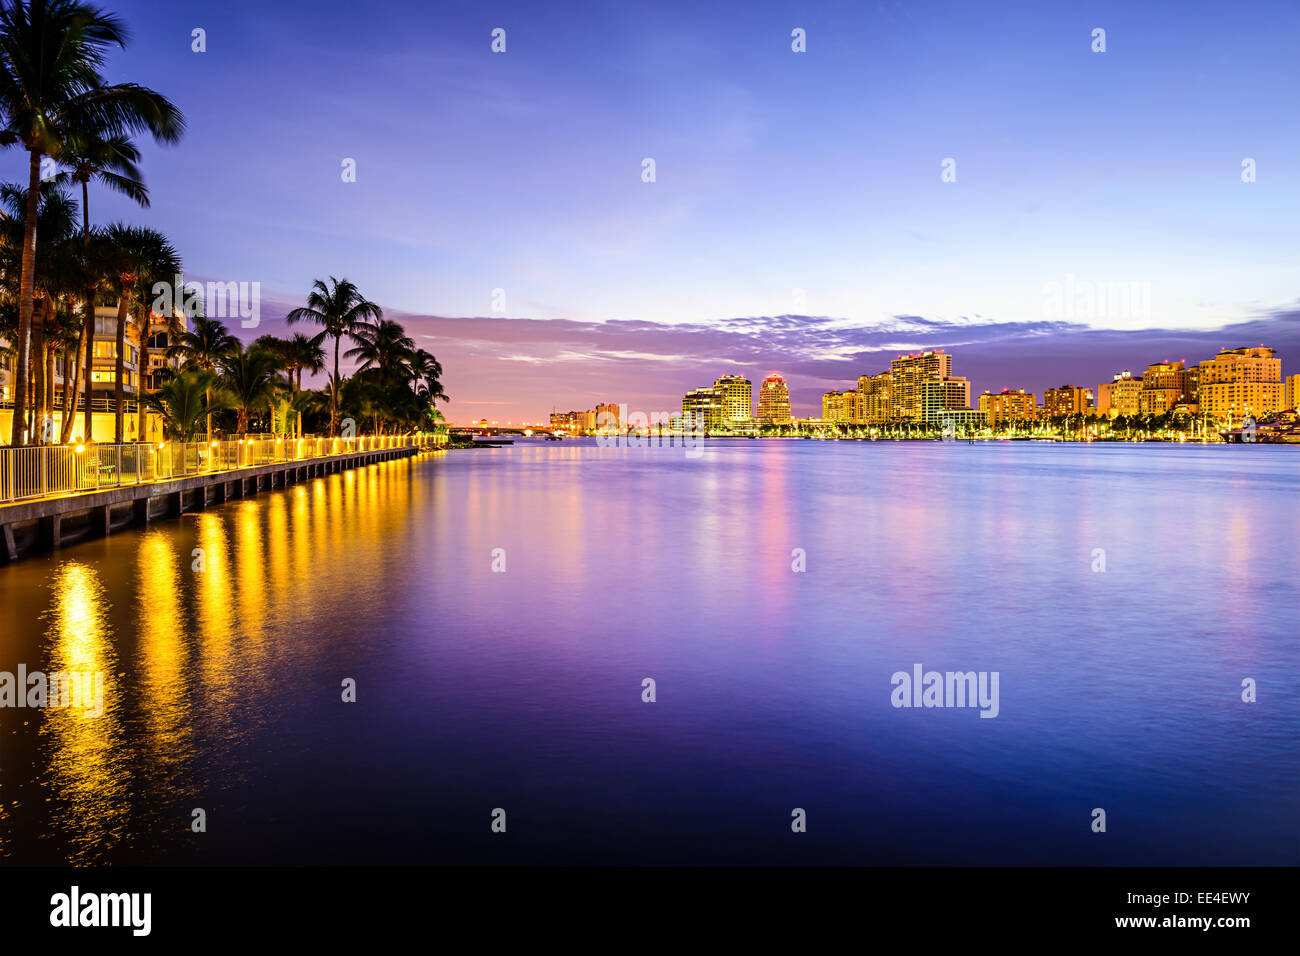 West Palm Beach, Floride cityscape sur l'Intracoastal Waterway. Photo Stock